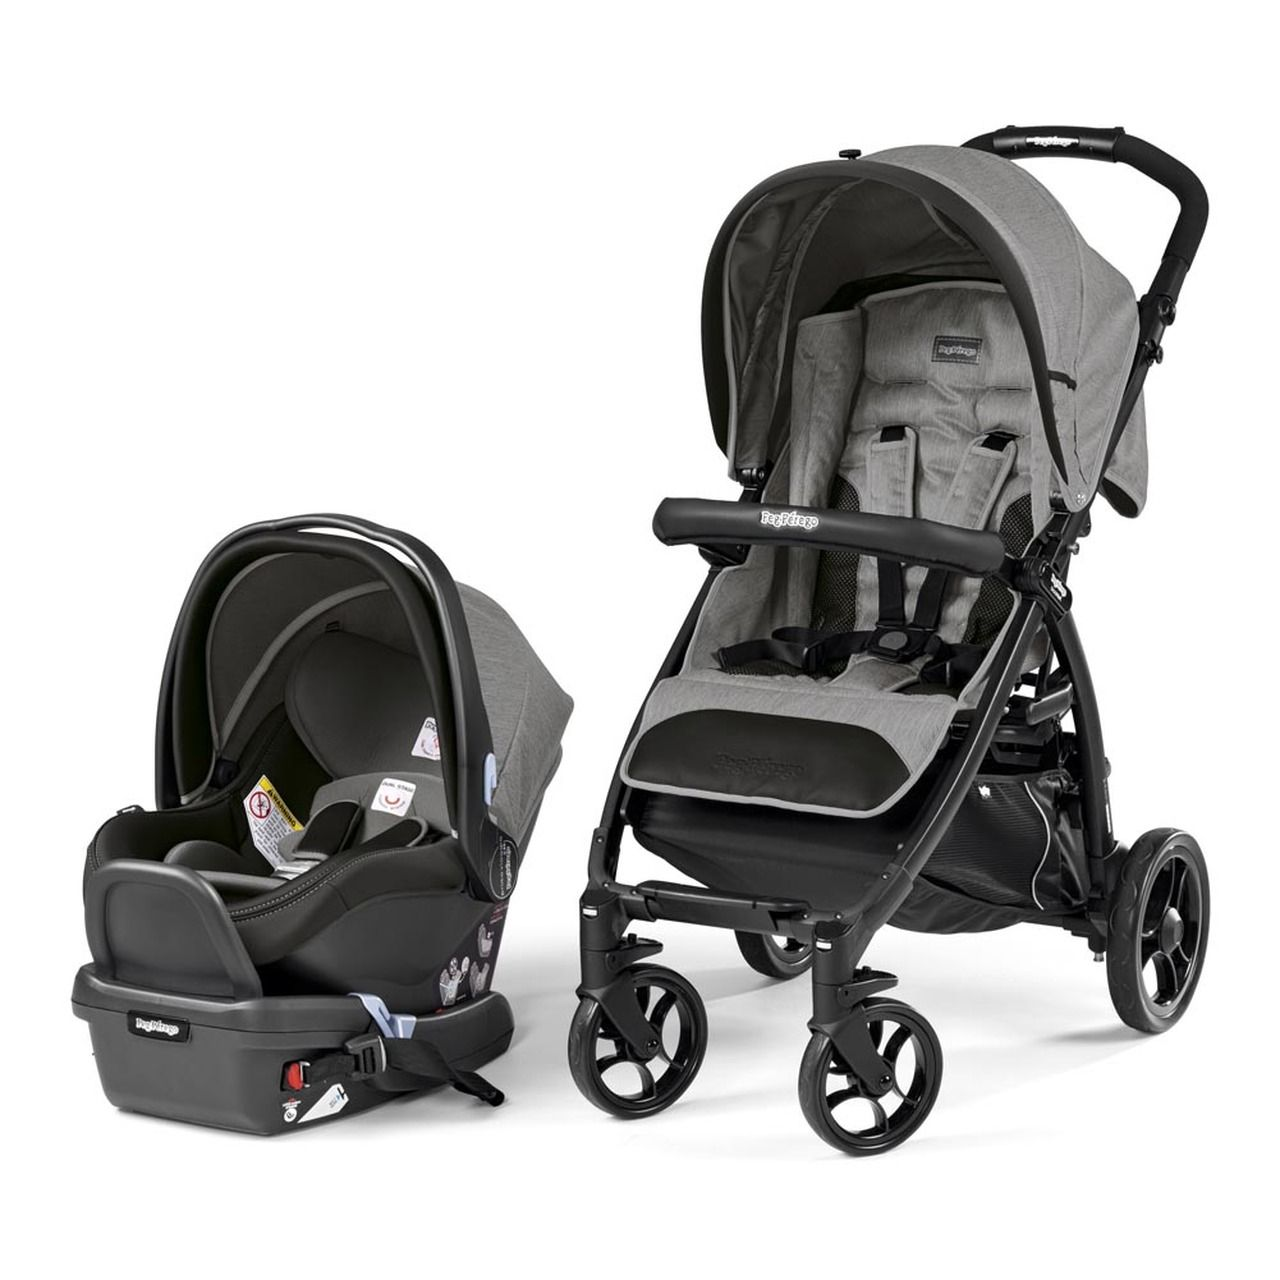 Peg Perego Booklet 50 Travel System Atmosphere in 2020